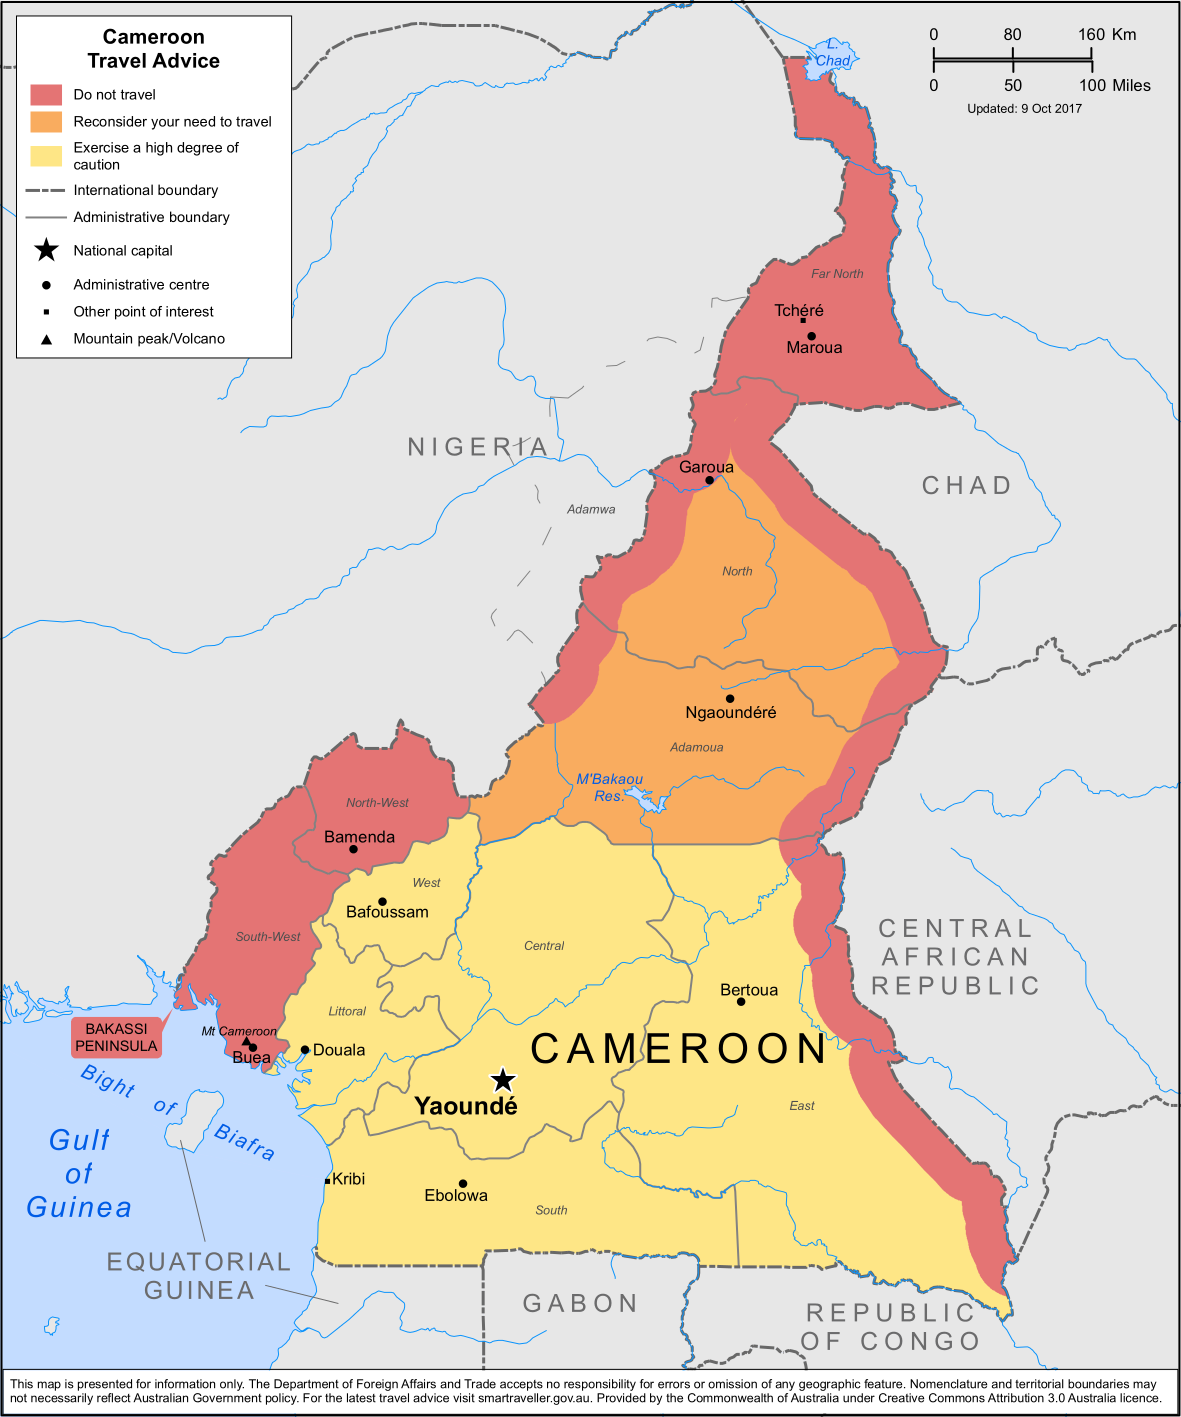 Cameroon-Travel-Insurance | AardvarkCompare.com